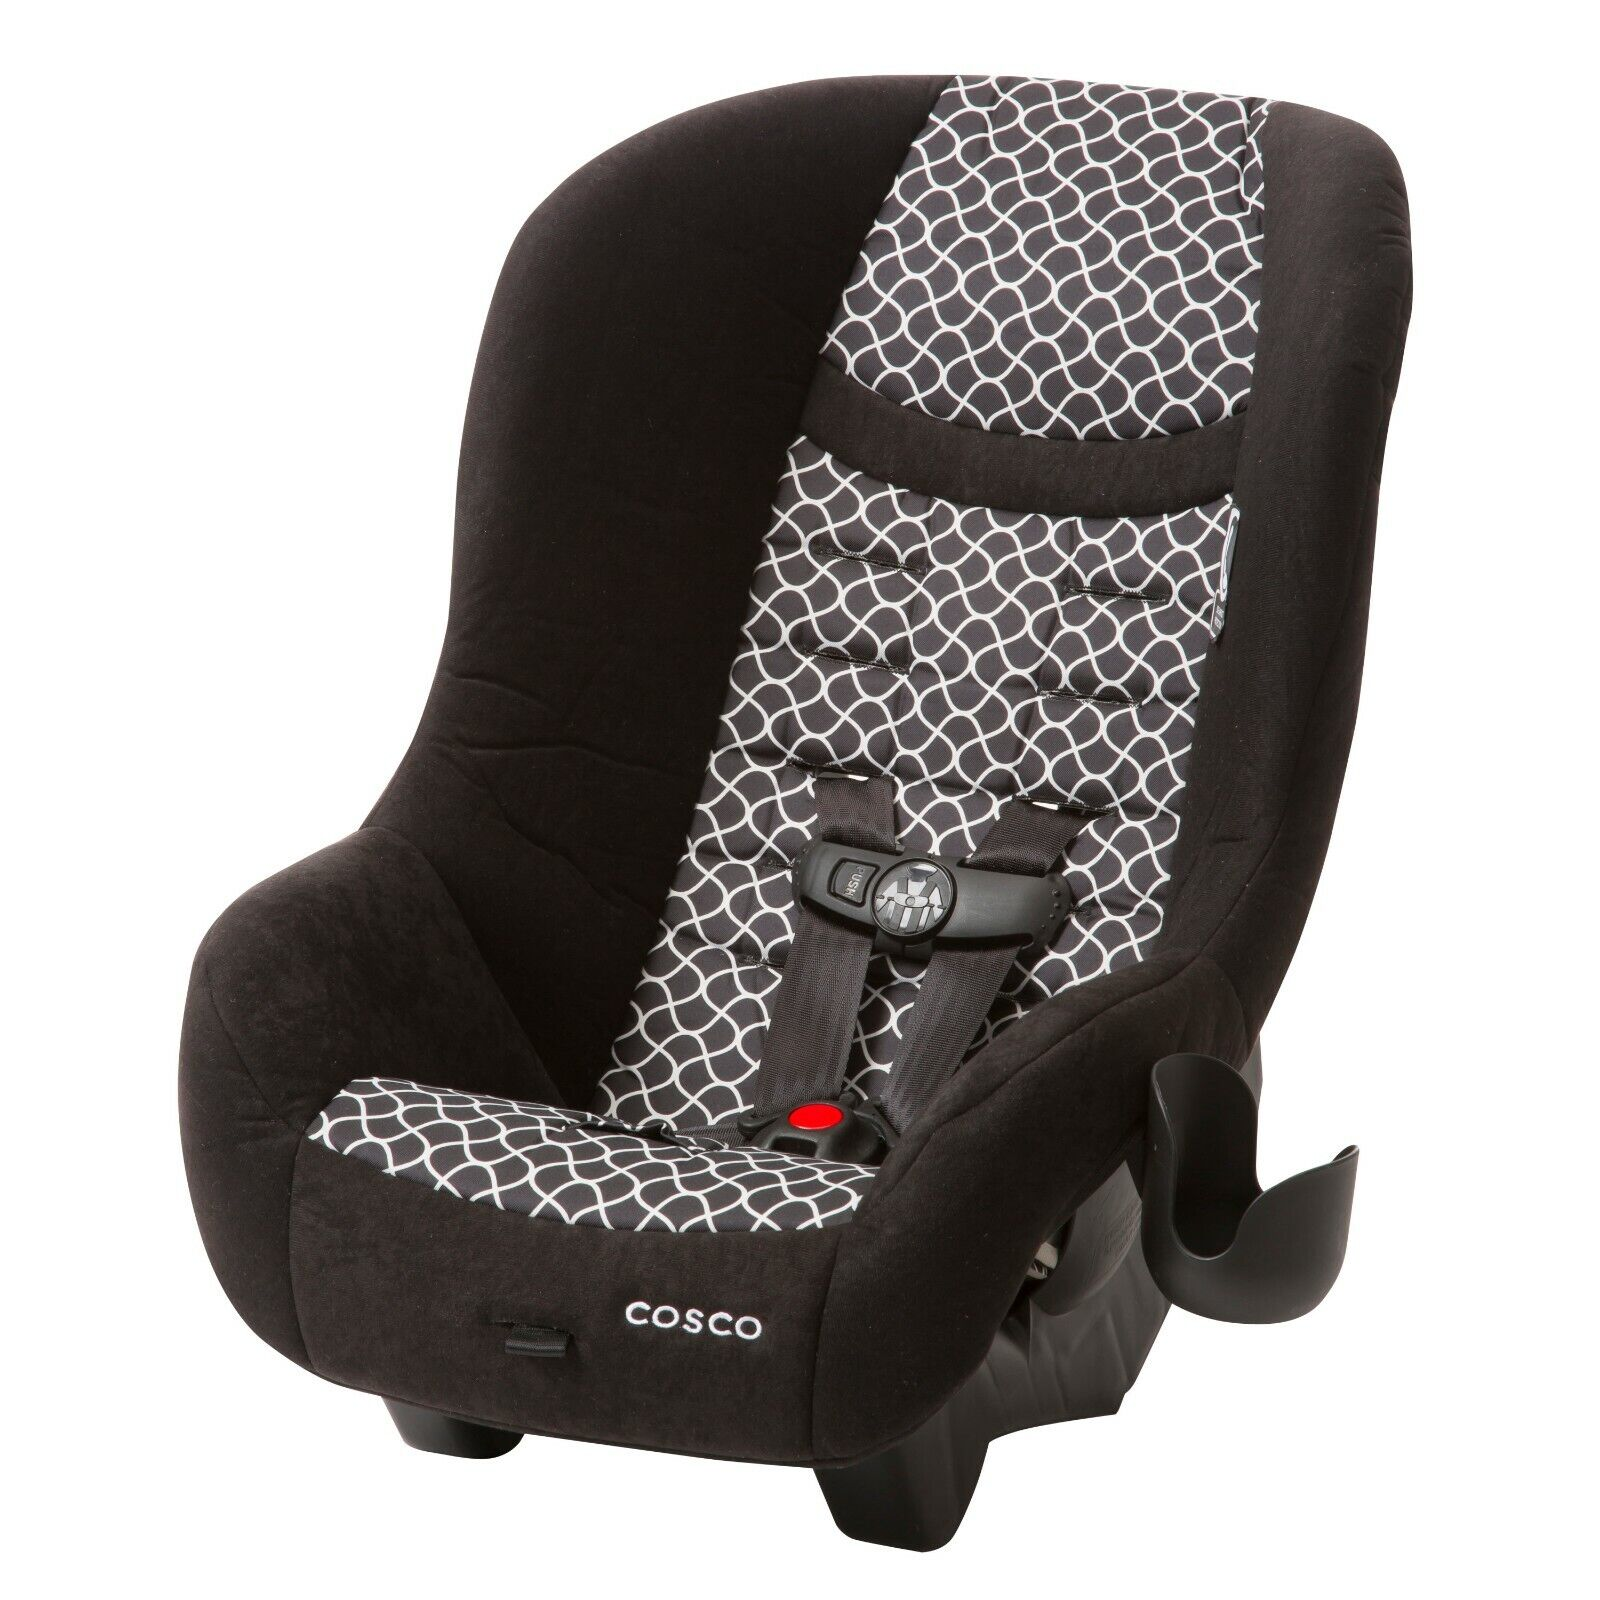 Convertible Car Seat Cosco Scenera NEXT Baby Child Infant Toddler Safety Otto